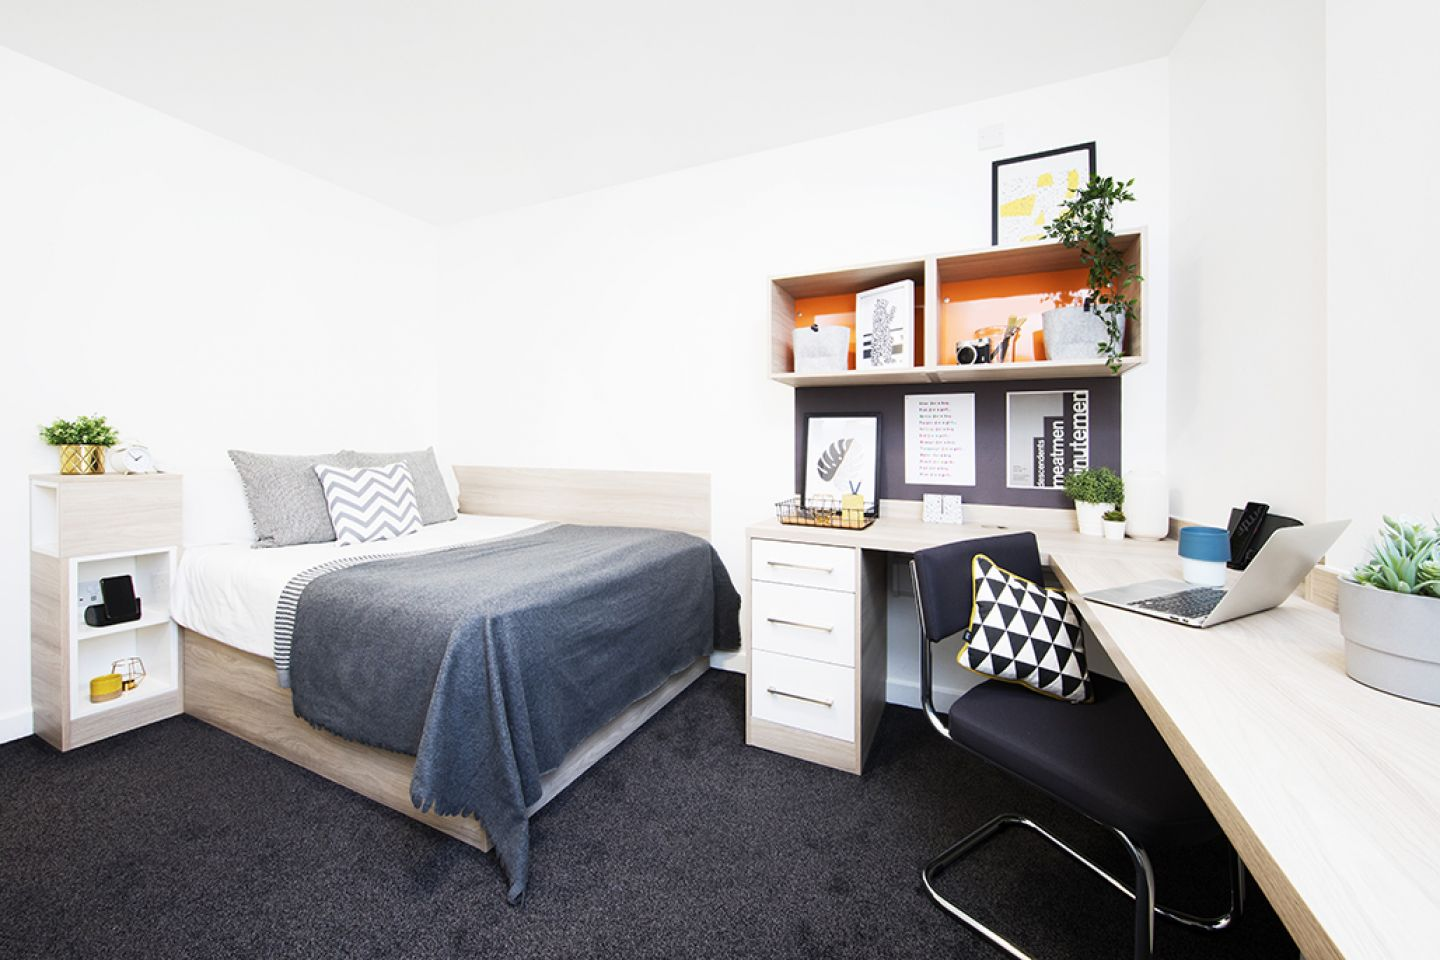 Arbour house bedroom with double bed and desk